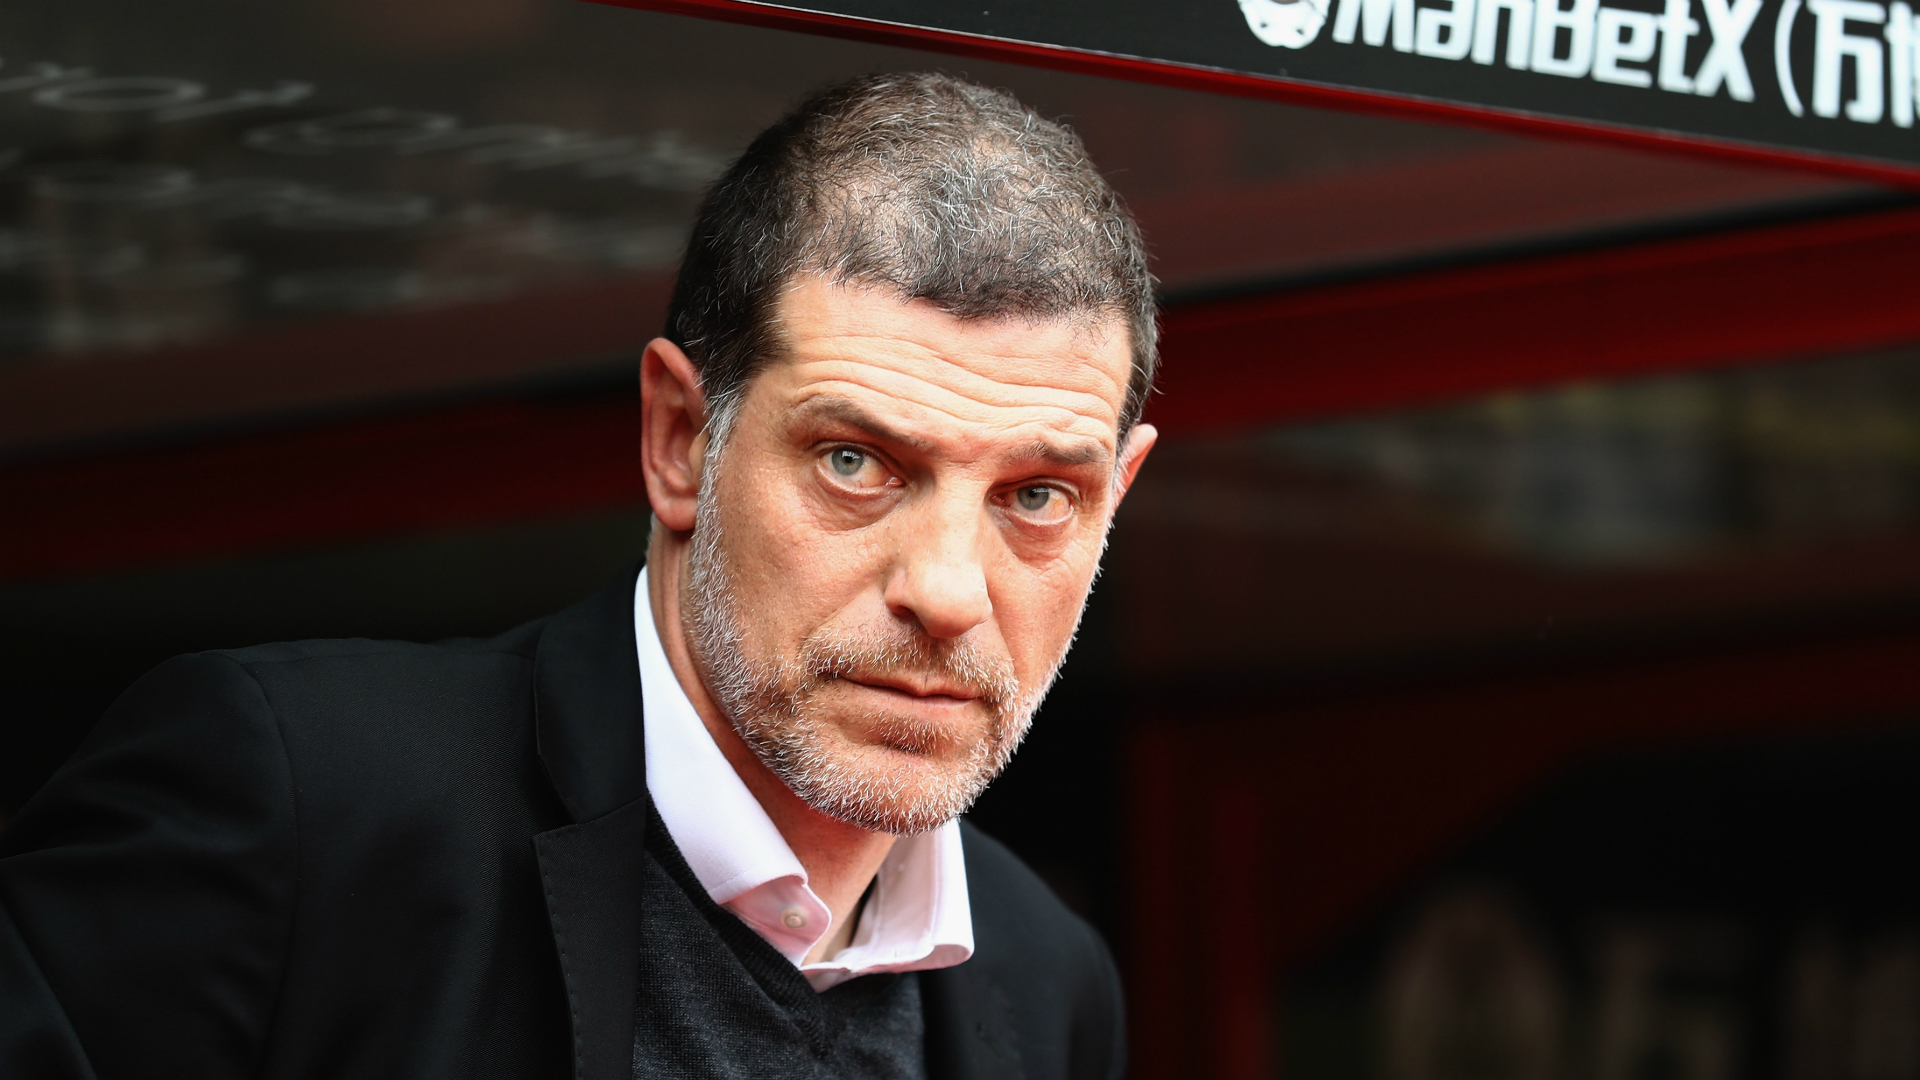 James Shan's temporary spell in charge of West Brom is over, with the Championship club appointing Slaven Bilic.